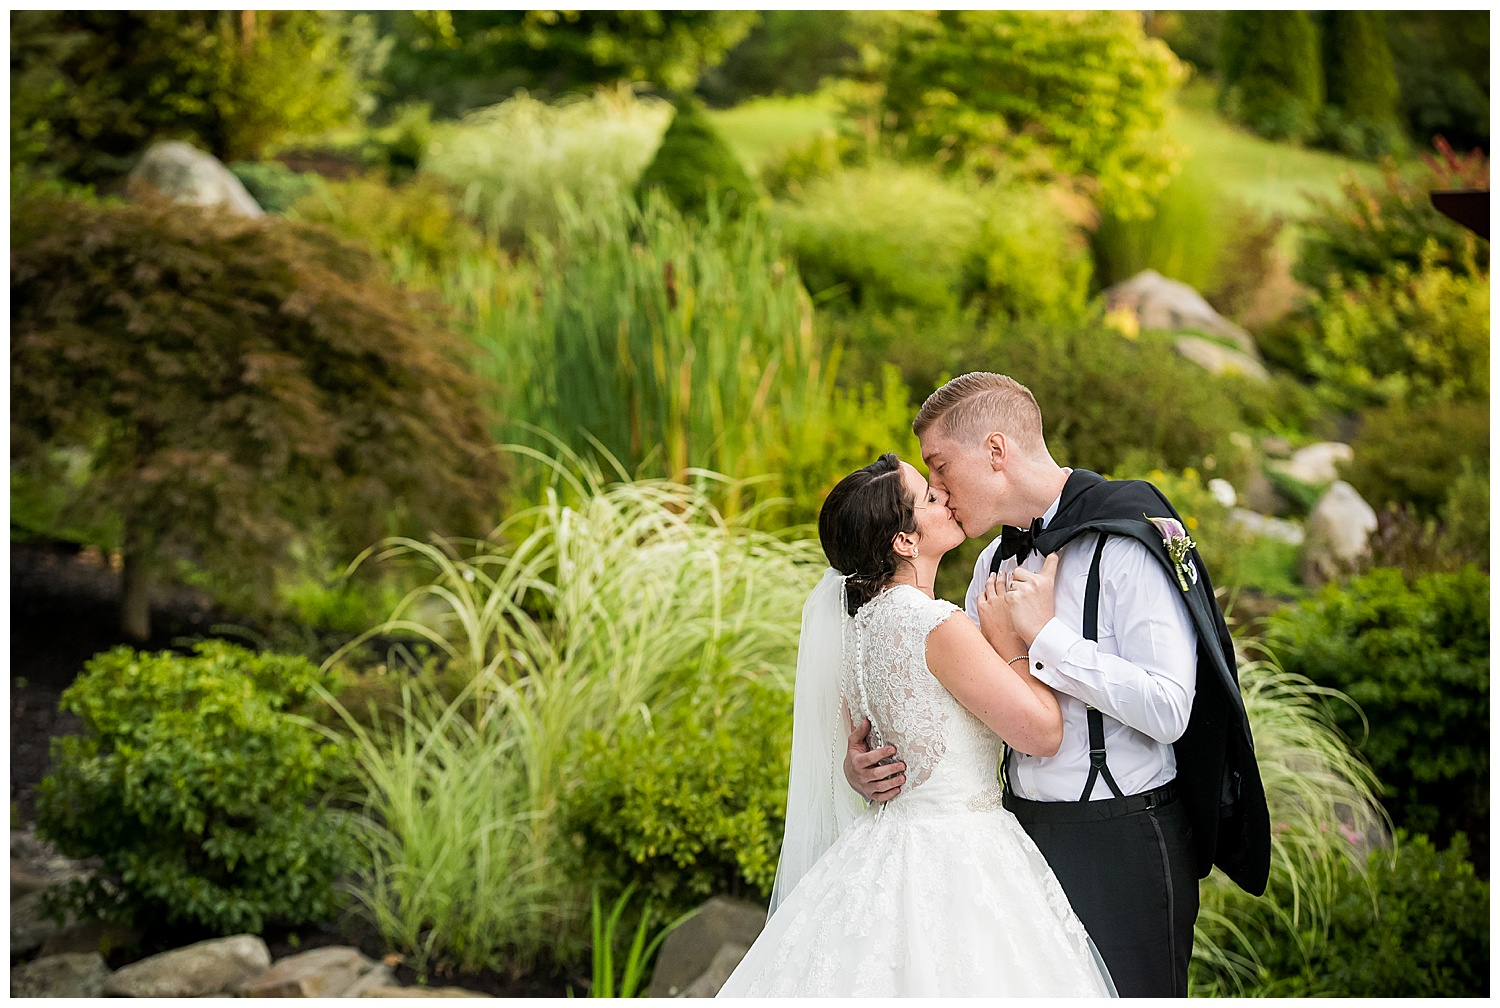 Jennifer & Conor – Atkinson Resort & Country Club Wedding